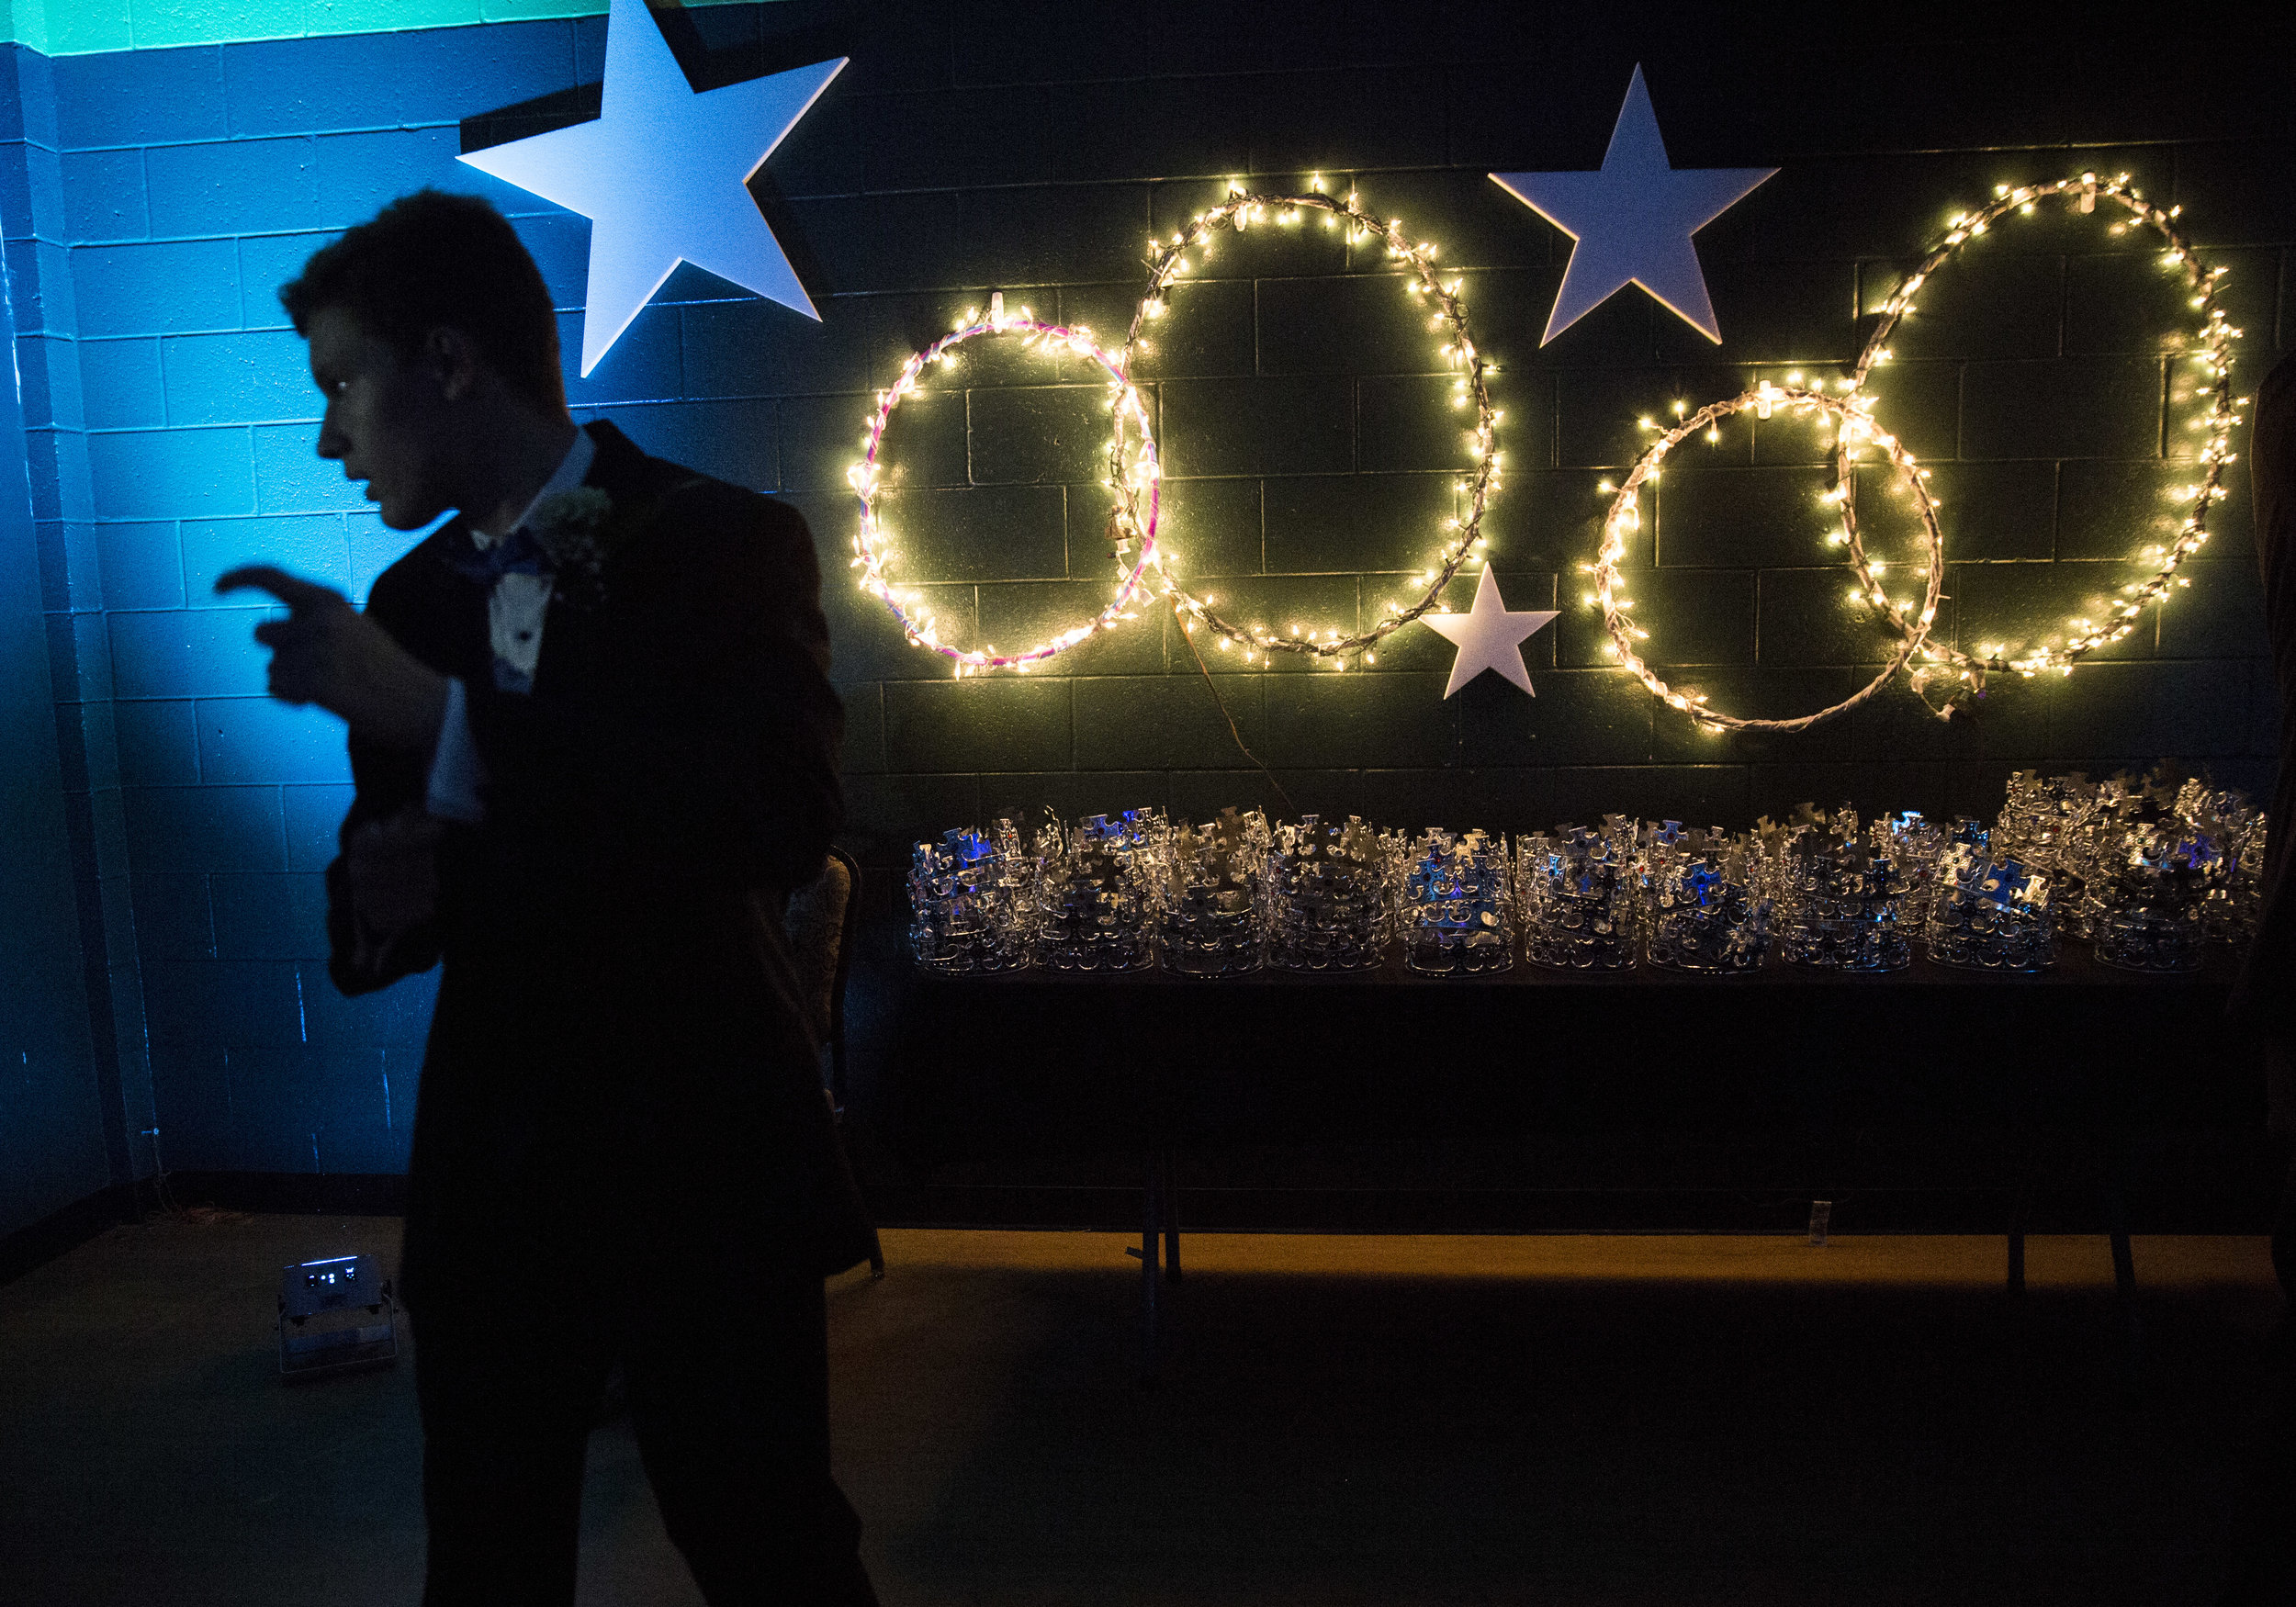 Travis Dixon dances in front of a table of crowns at the Night to Shine event in Naples, Fla. on Friday, Feb. 9, 2018. Night to Shine is a worldwide event put together by the Tim Tebow Foundation to give those with special needs a total prom night experience.